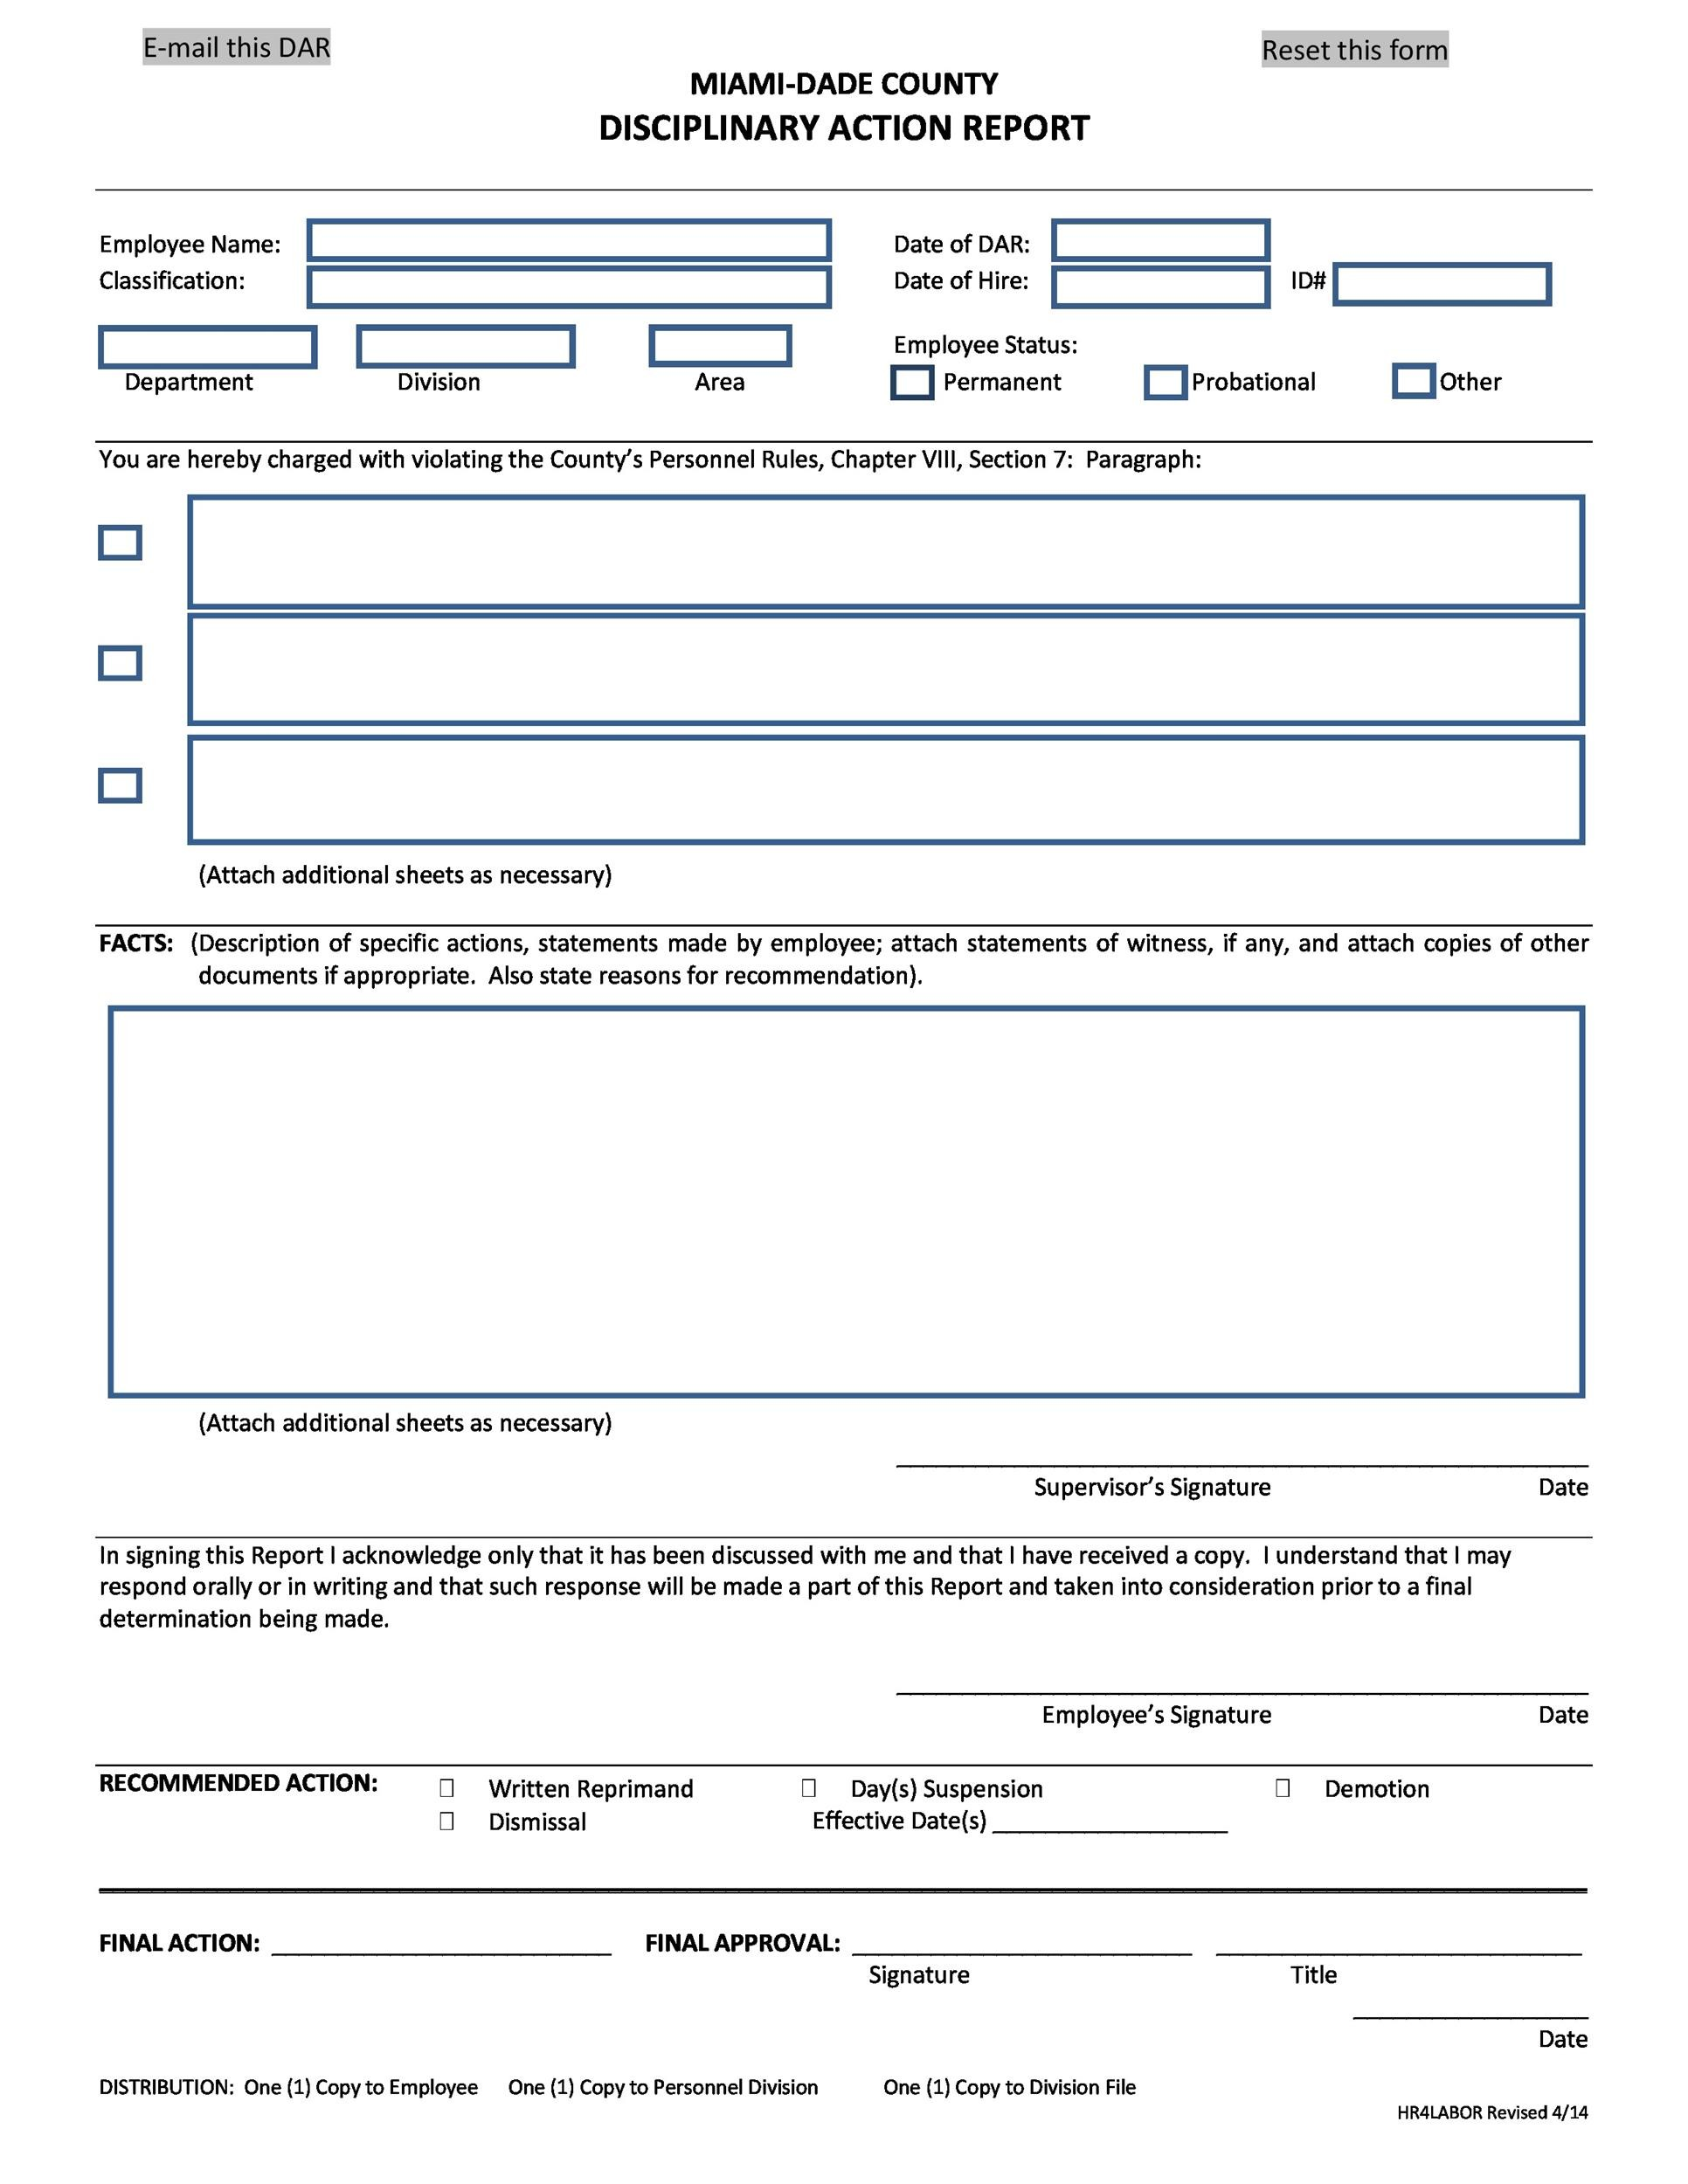 write up sheet 8 employee write up form free download download free printable employee write up form samples in pdf, word and excel formats  fax cover sheet 35 document(s .